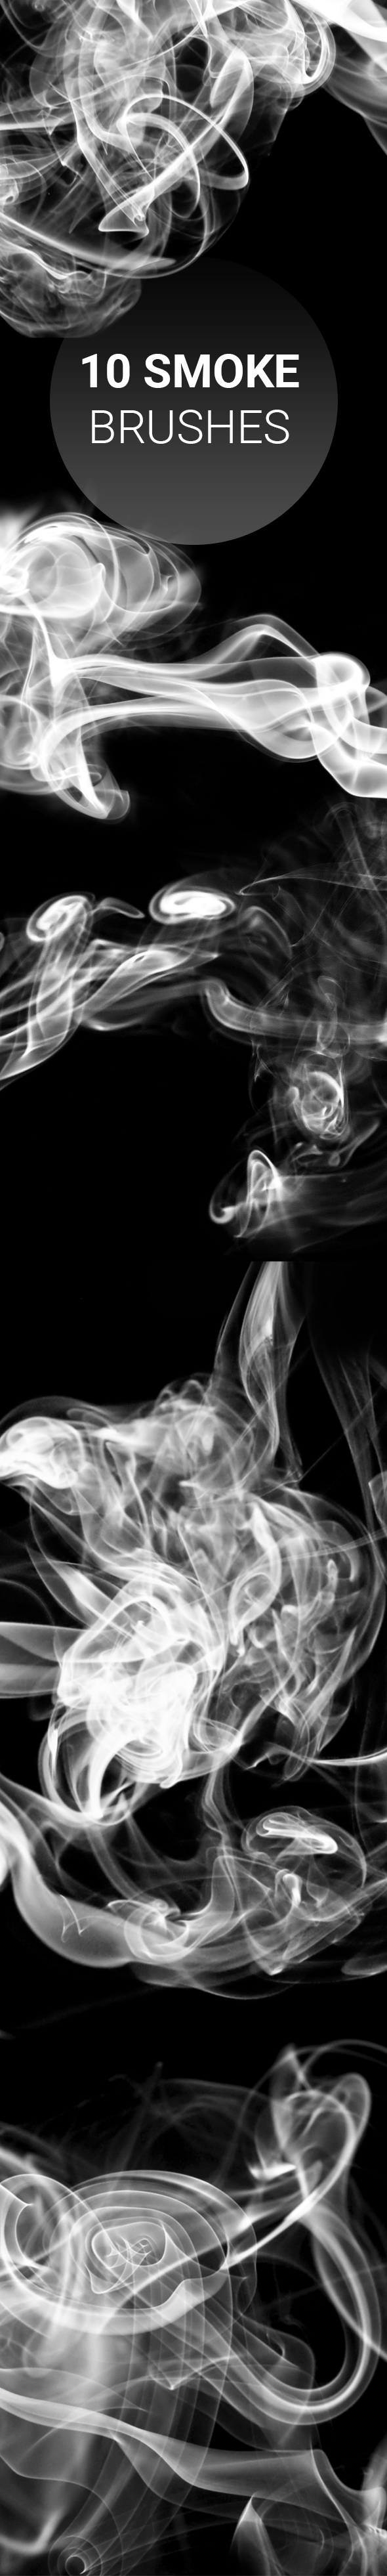 10-smoke-brushes-preview